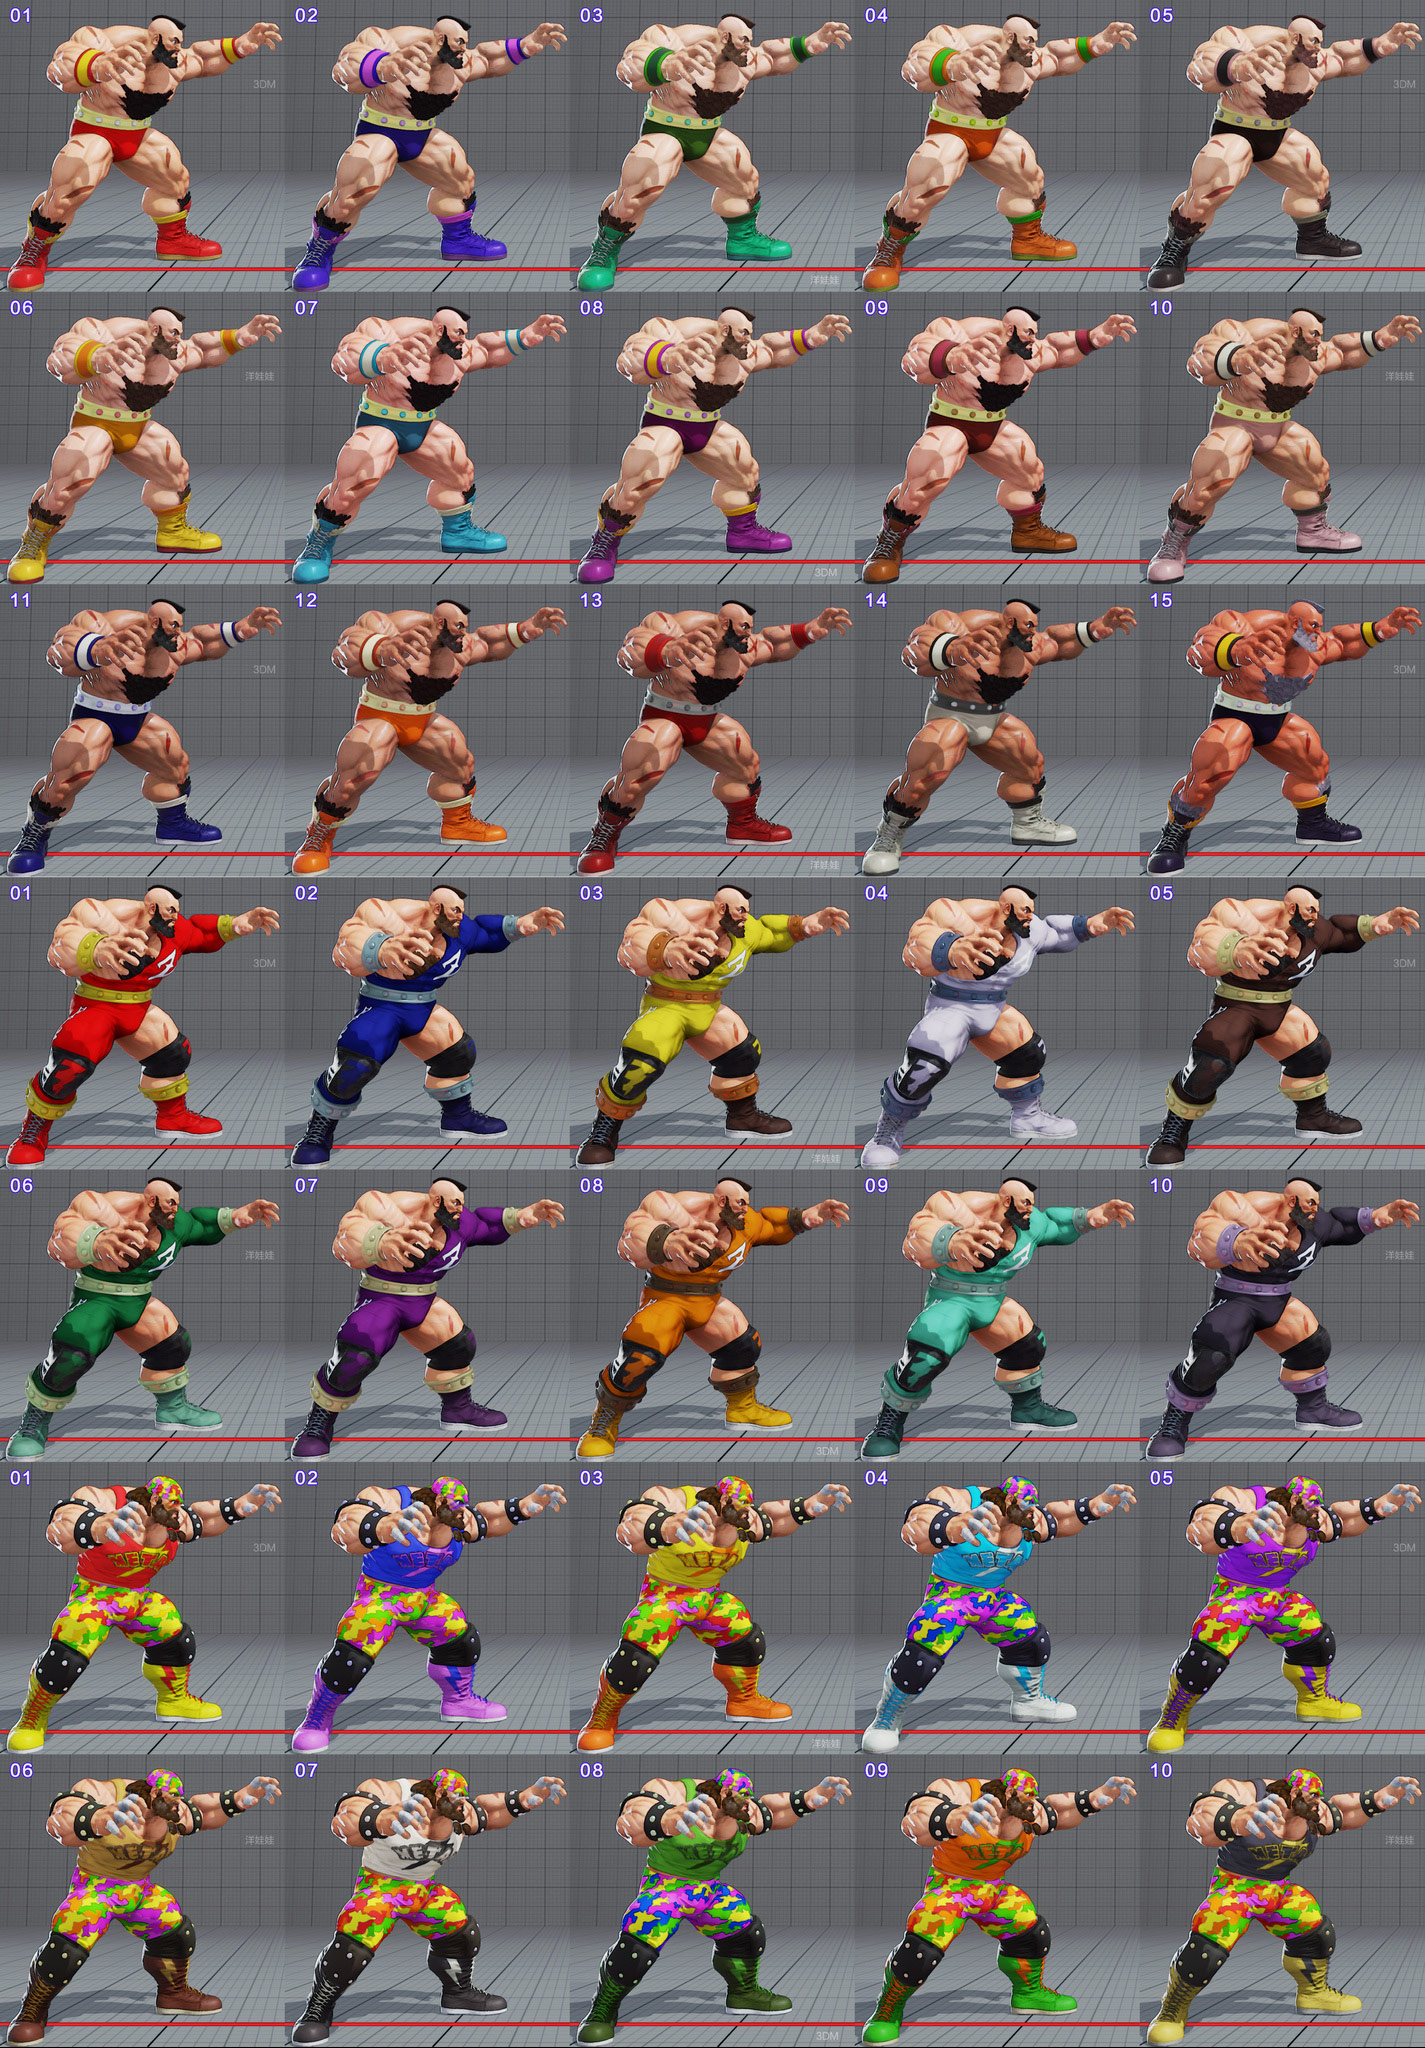 All colors for all current costumes in Street Fighter 5 13 out of 18 image gallery